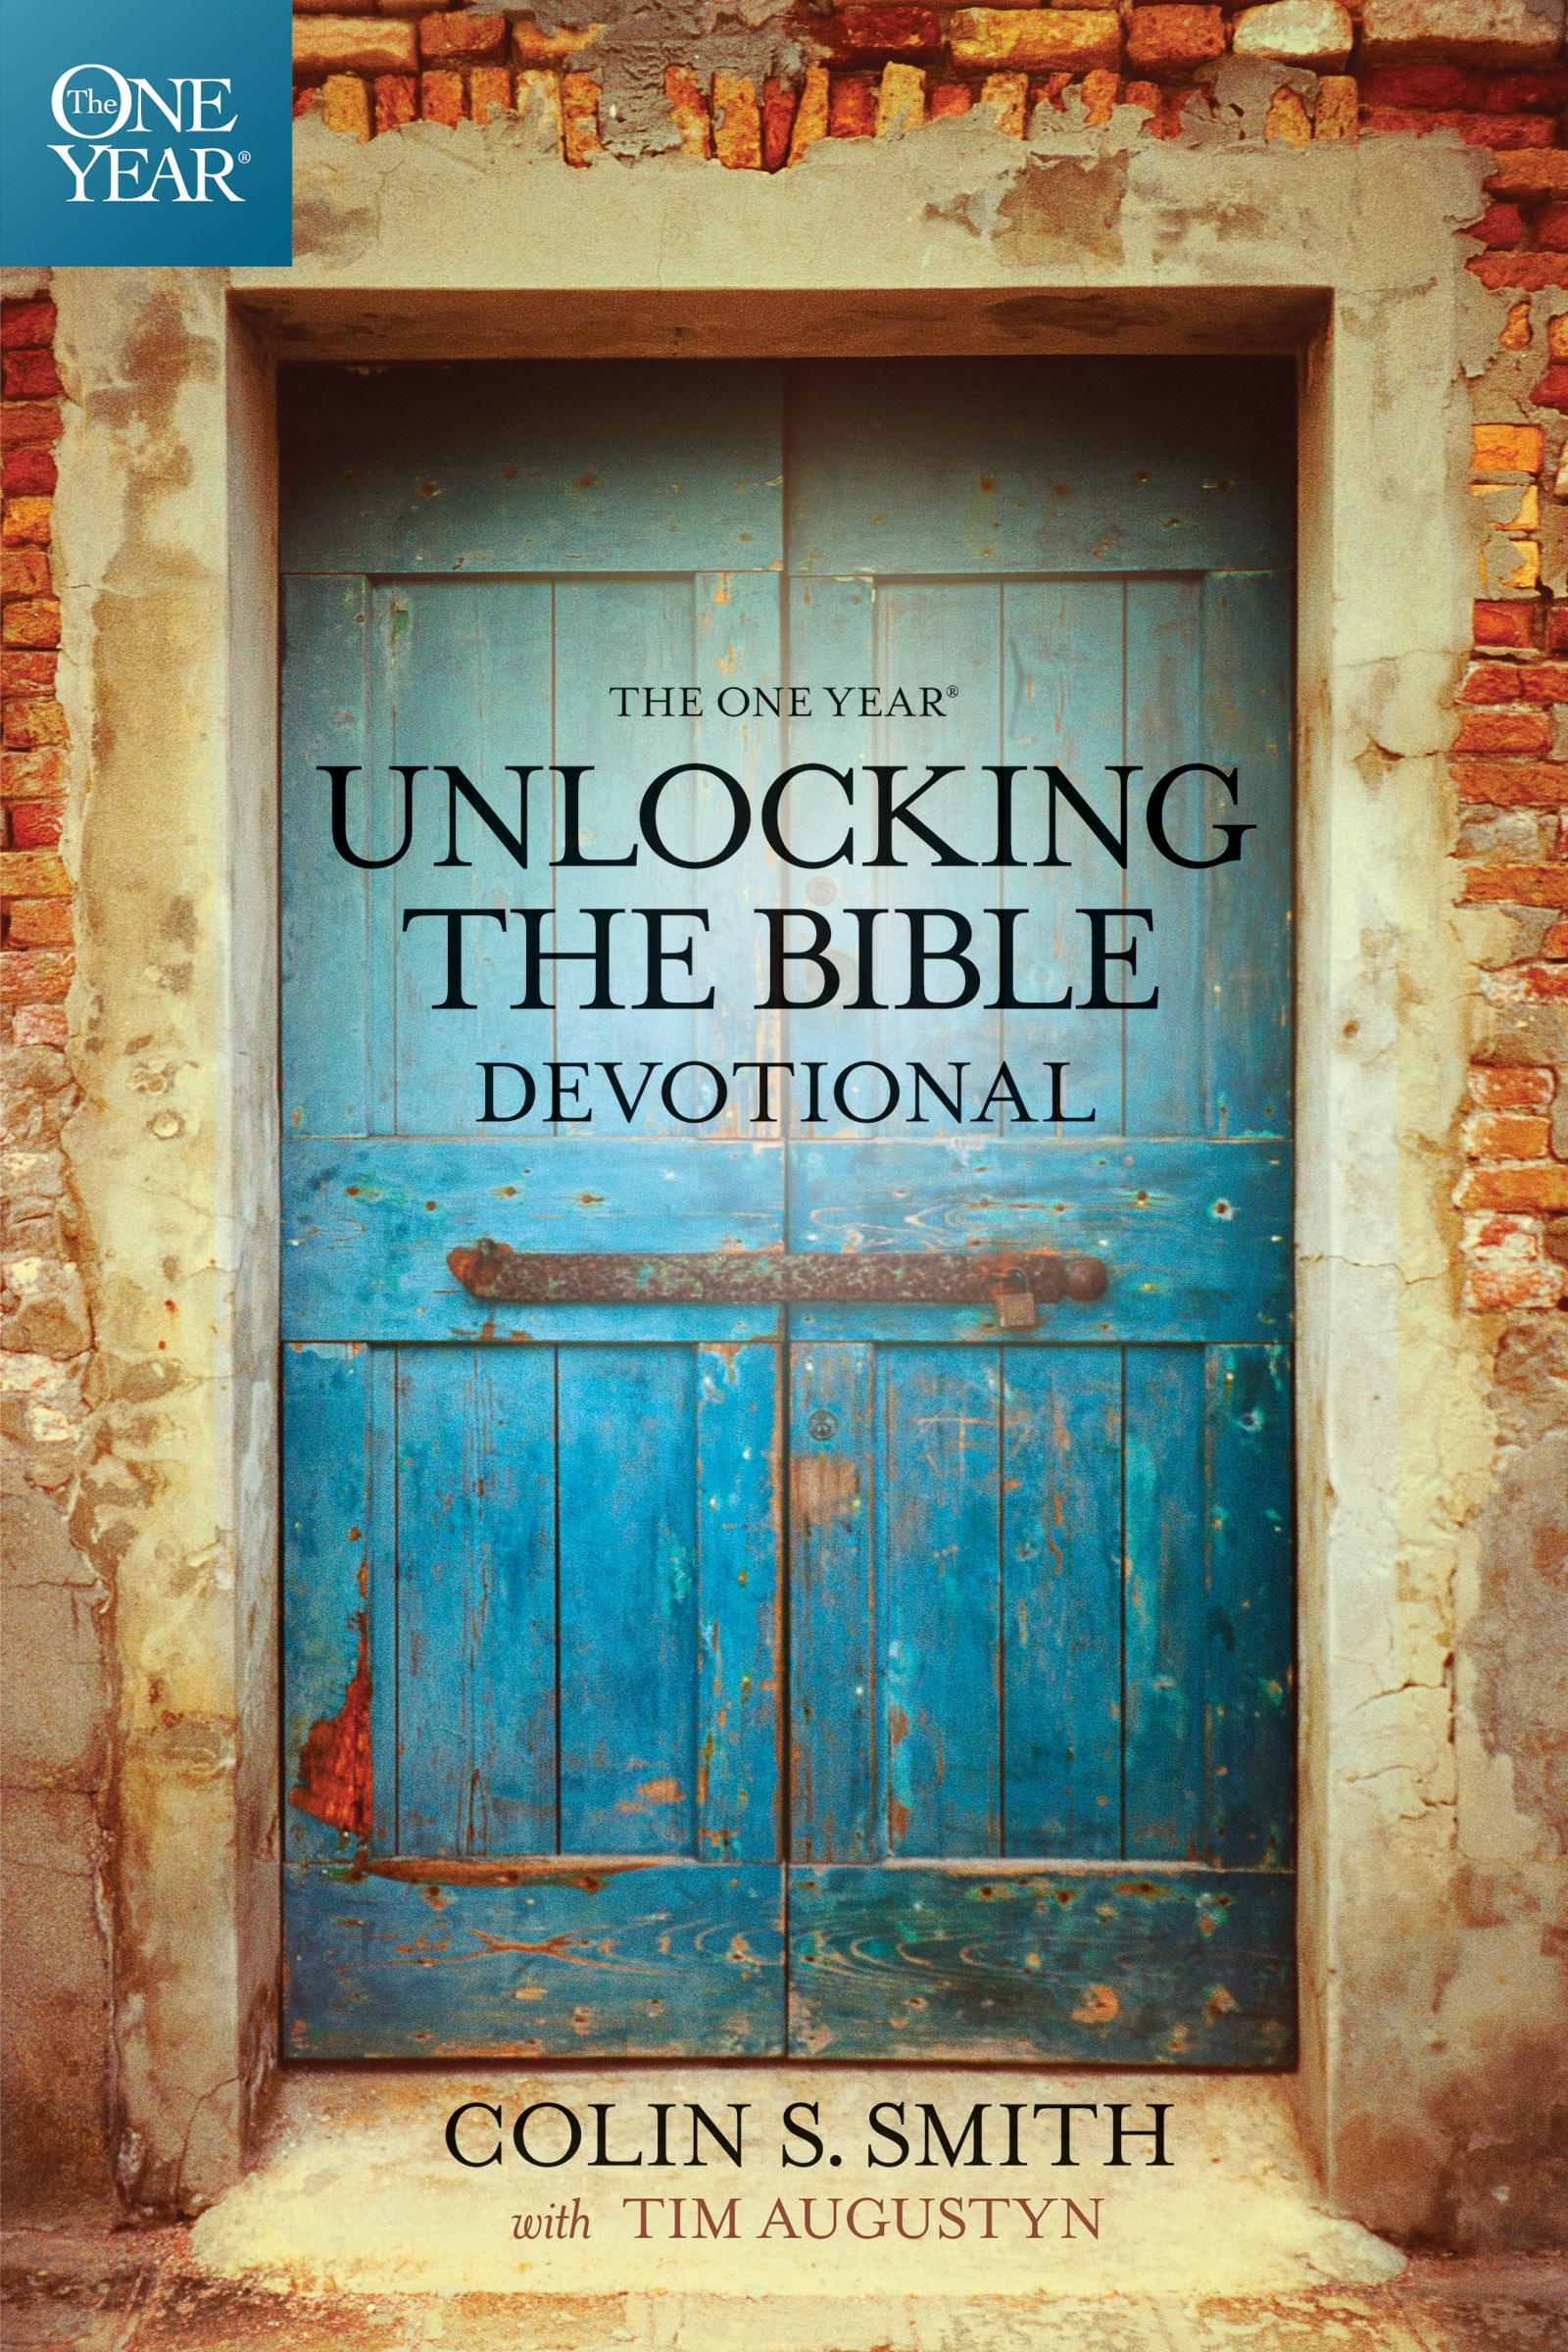 The One Year Unlocking the Bible Devotional by Colin Smith